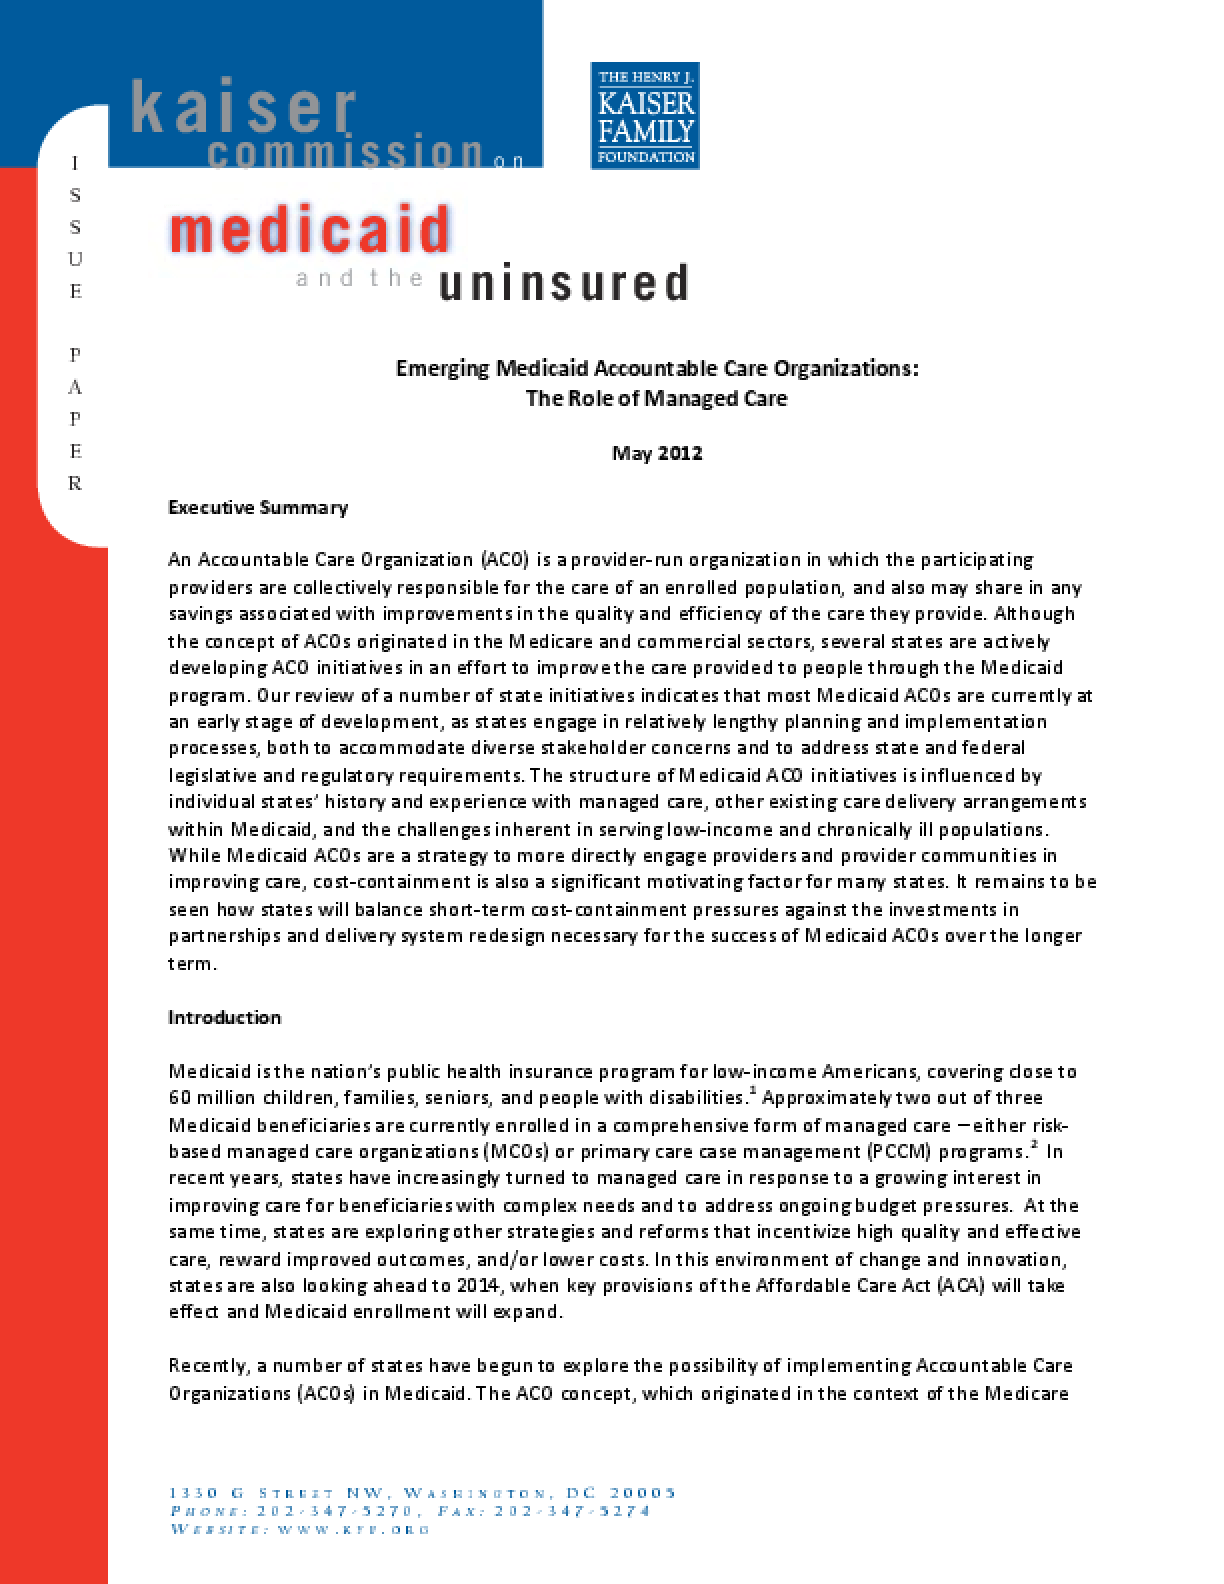 Emerging Medicaid Accountable Care Organizations: The Role of Managed Care